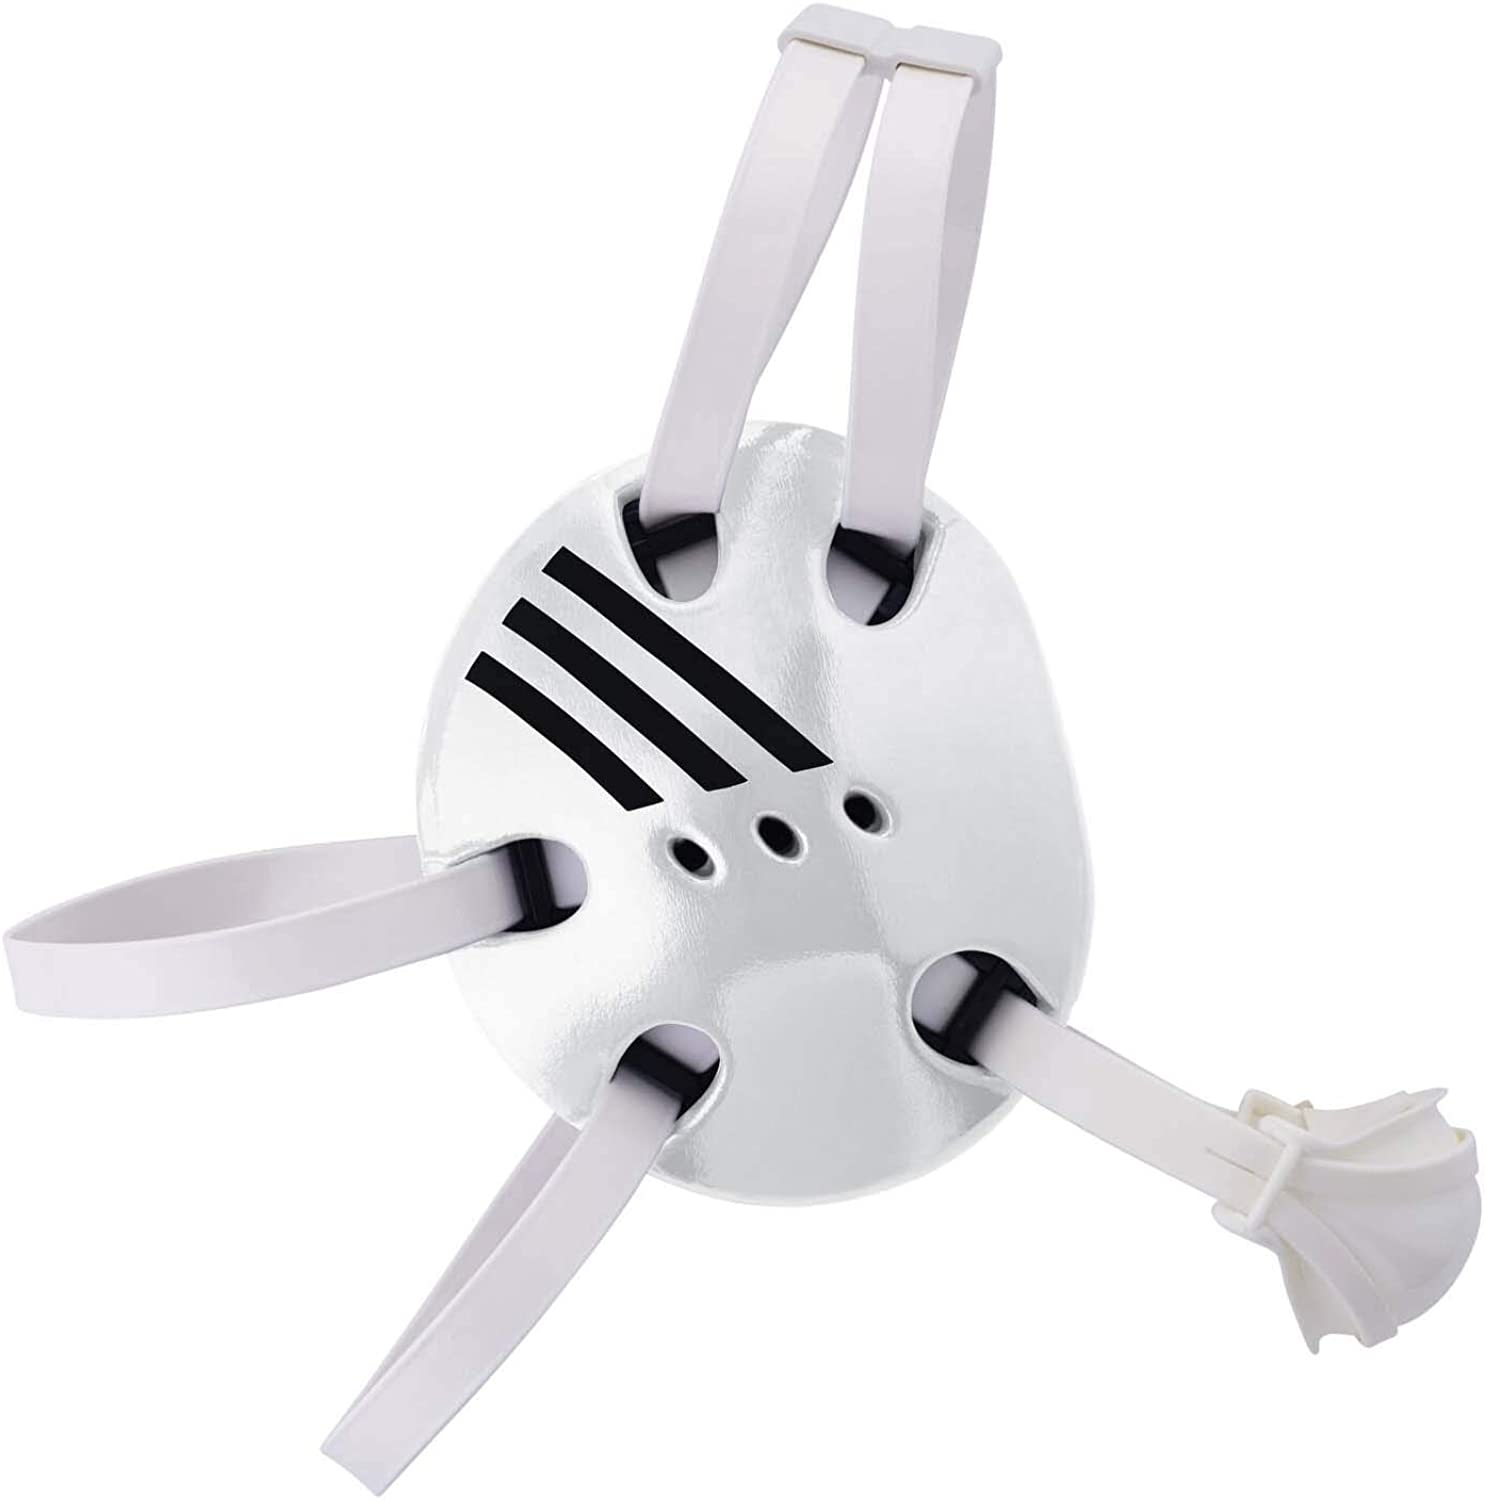 adidas Response Earguard White : Wrestling Ear Guards : Sports & Outdoors